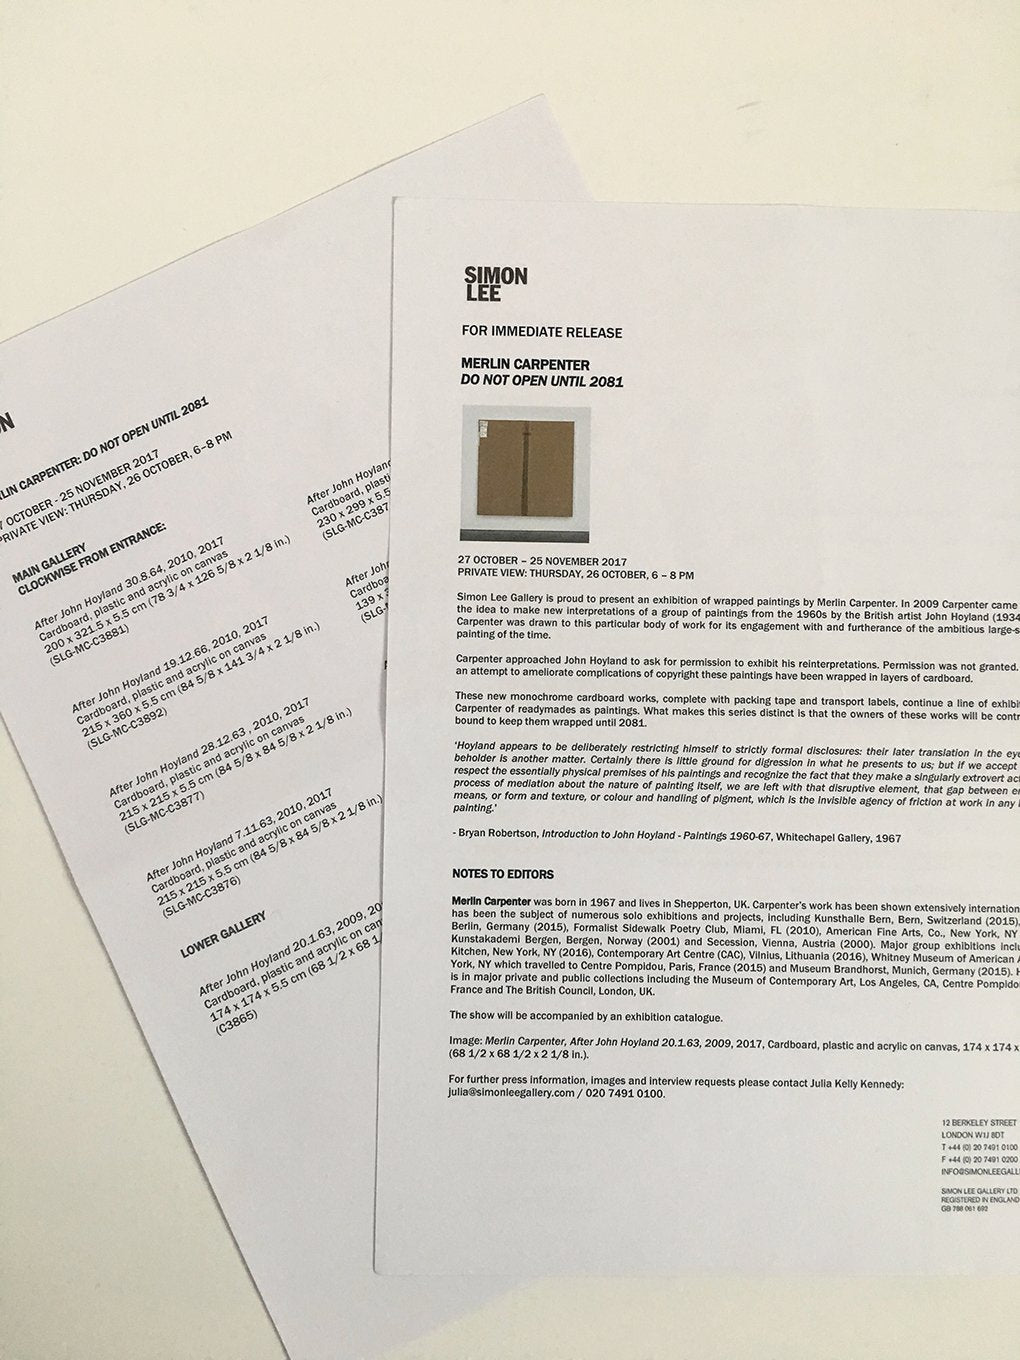 Merlin Carpenter exhibition 'Do Not Open Until 2081' at Simon Lee Gallery, London. - Checklist, press release and sales agreement form.